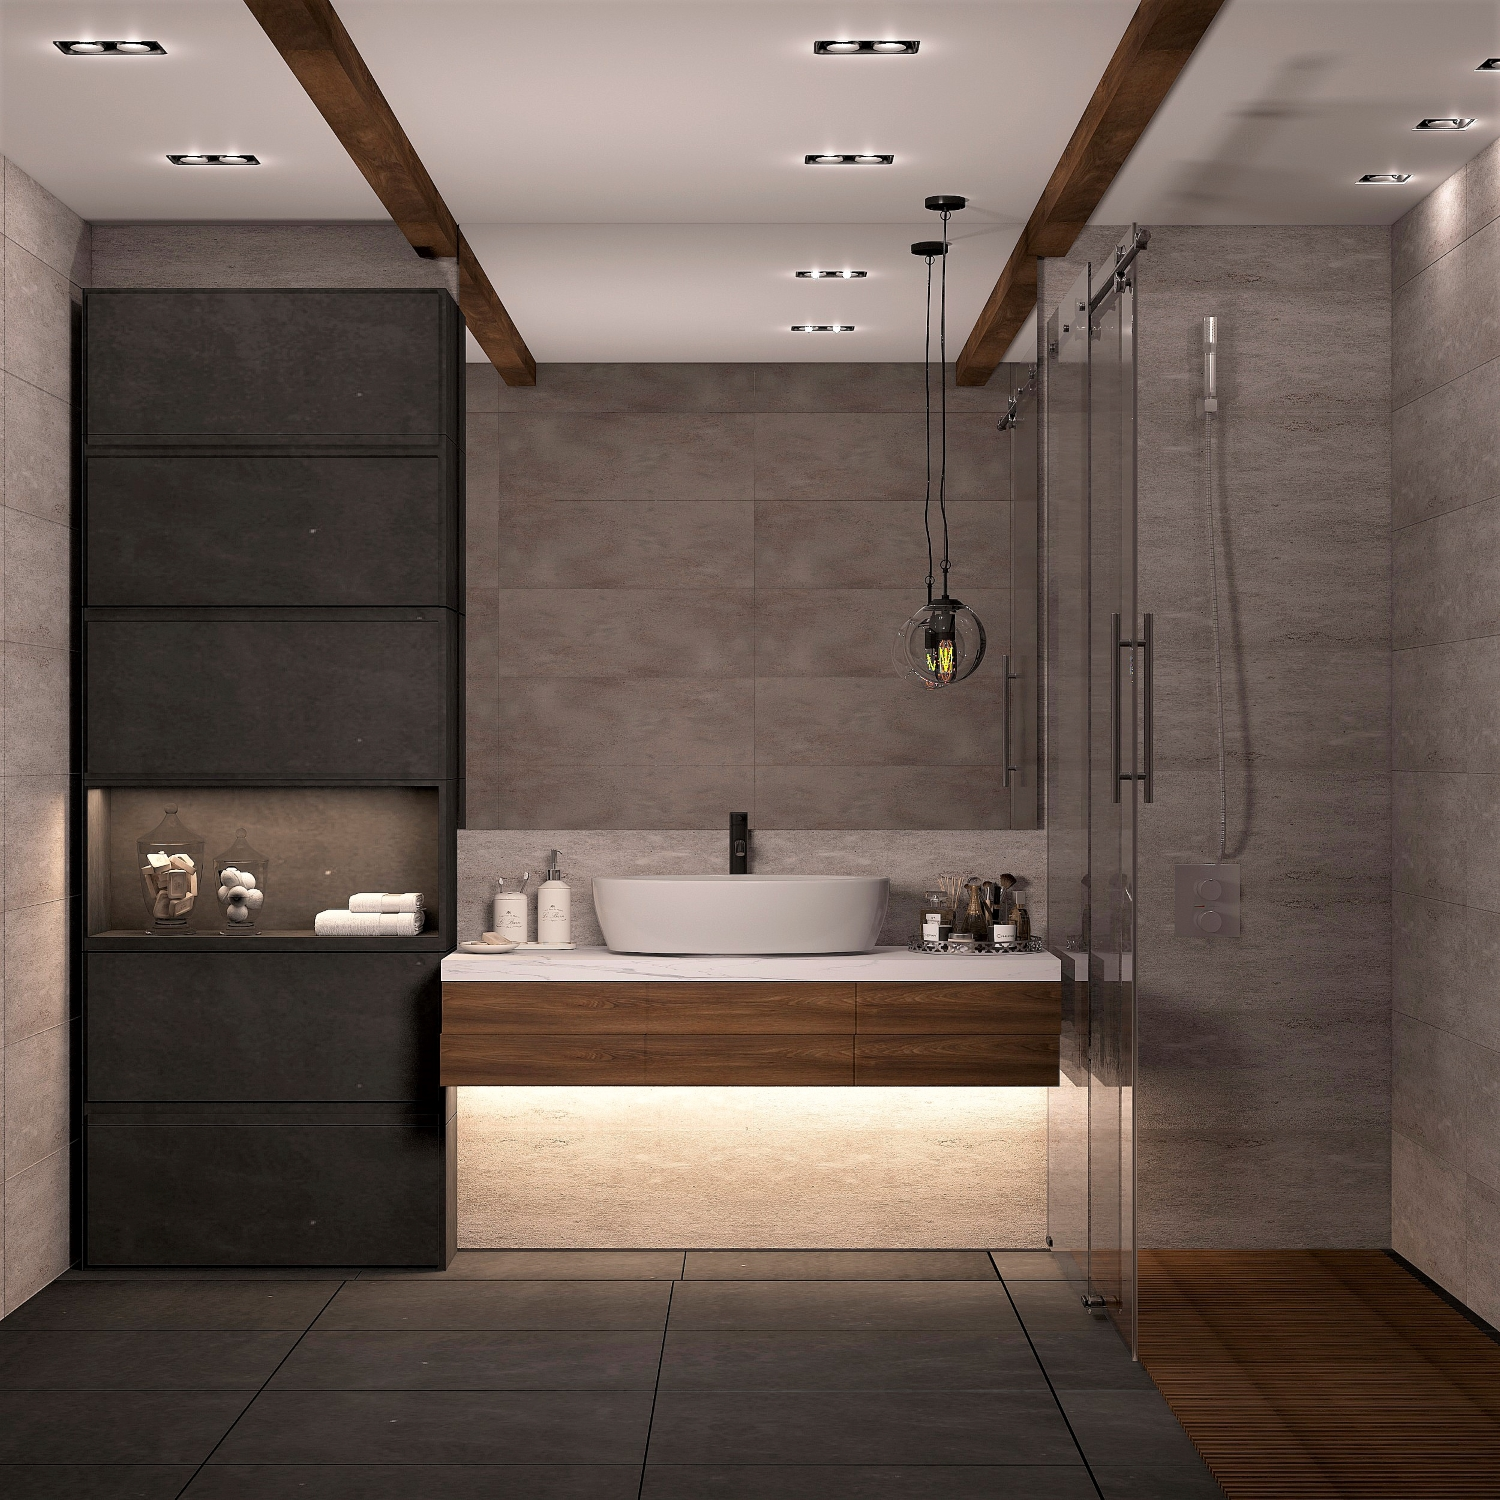 apartment on the Khodynsky field. in 3d max vray 3.0 image